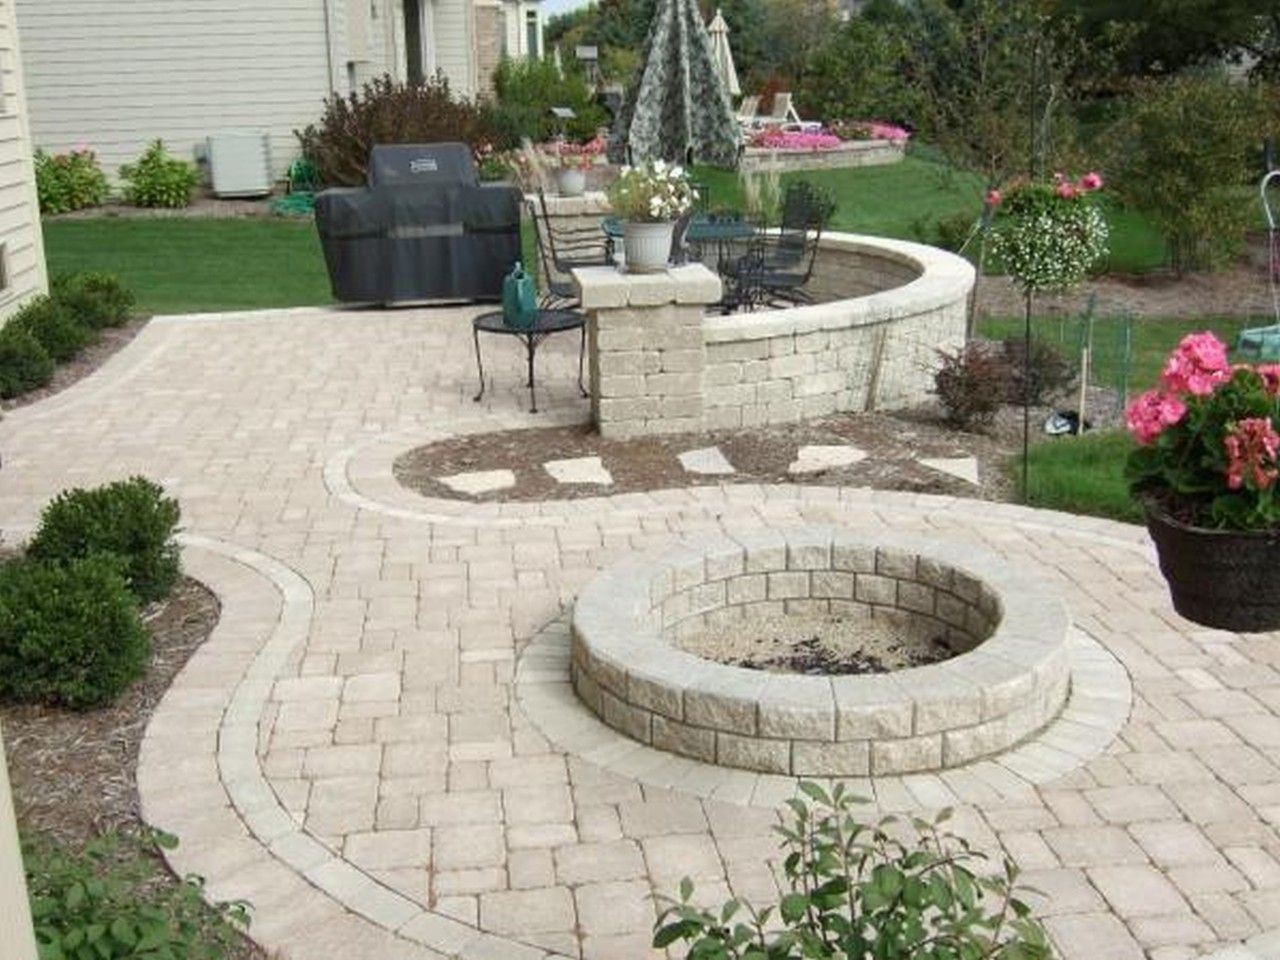 building fences | Backyard Fire Pit Ideas Backyard Patio ... on Backyard Patio Designs With Fire Pit  id=80554